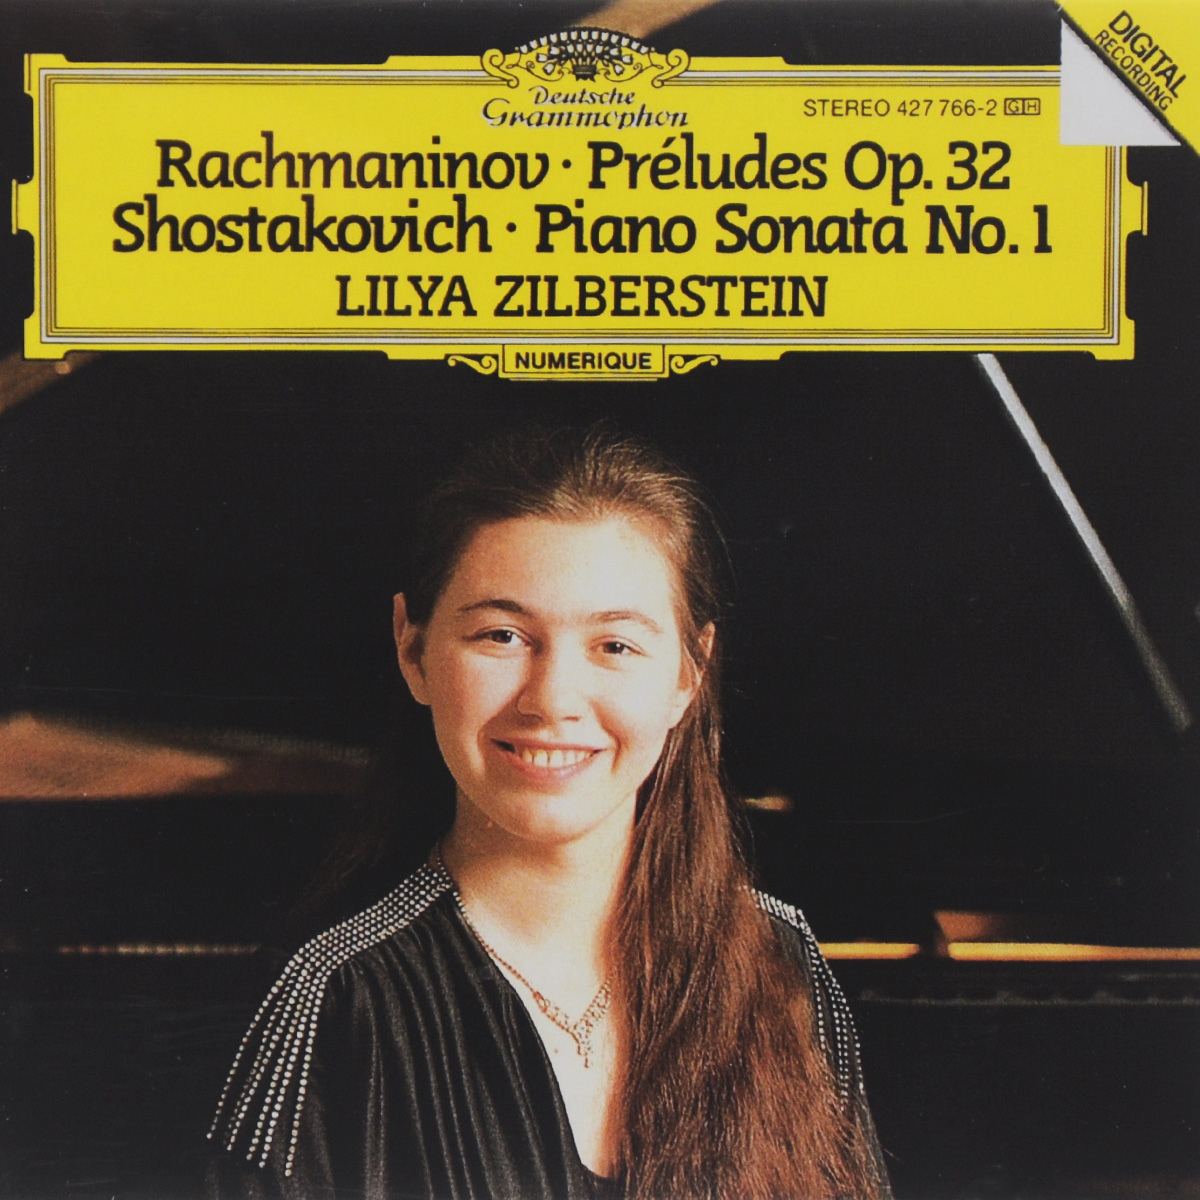 Лиля Зильберштайн Lilya Zilberstein. Rachmaninov. Preludes Op. 32 / Shostakovich. Piano Sonata No. 1 владимир ашкенази лиля зильберштайн олли мустонен линн харрелл beaux arts trio fitzwilliam string quartet shostakovich piano music chamber works 5 cd page 9